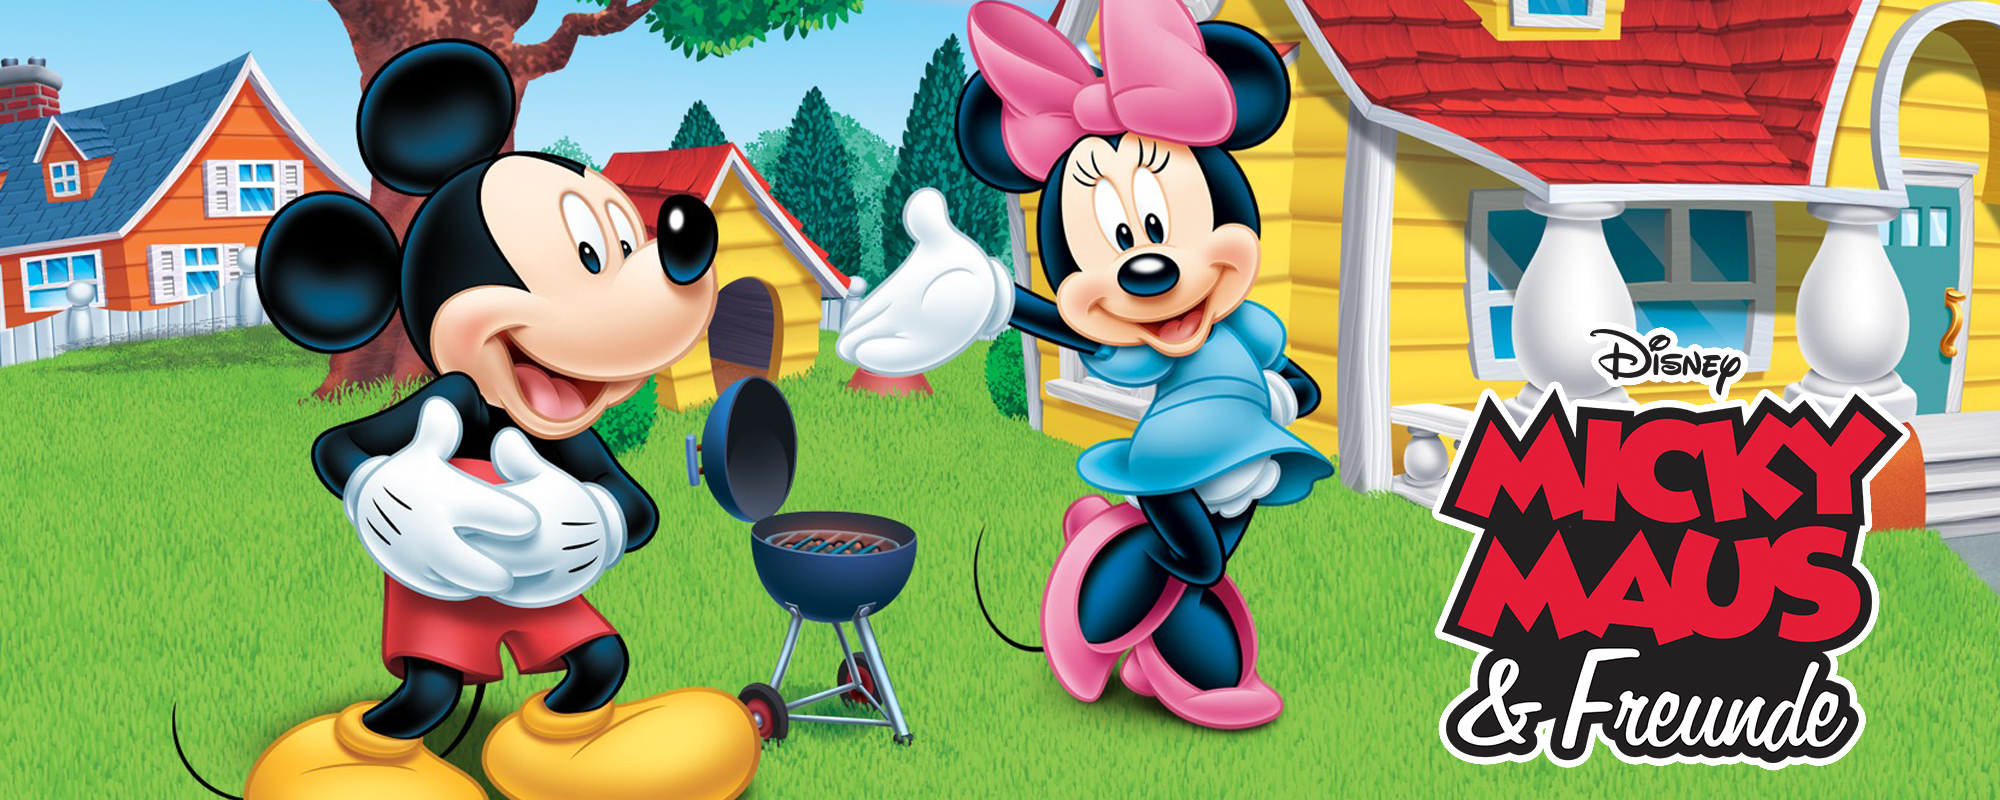 disney micky maus figuren spiele mehr. Black Bedroom Furniture Sets. Home Design Ideas